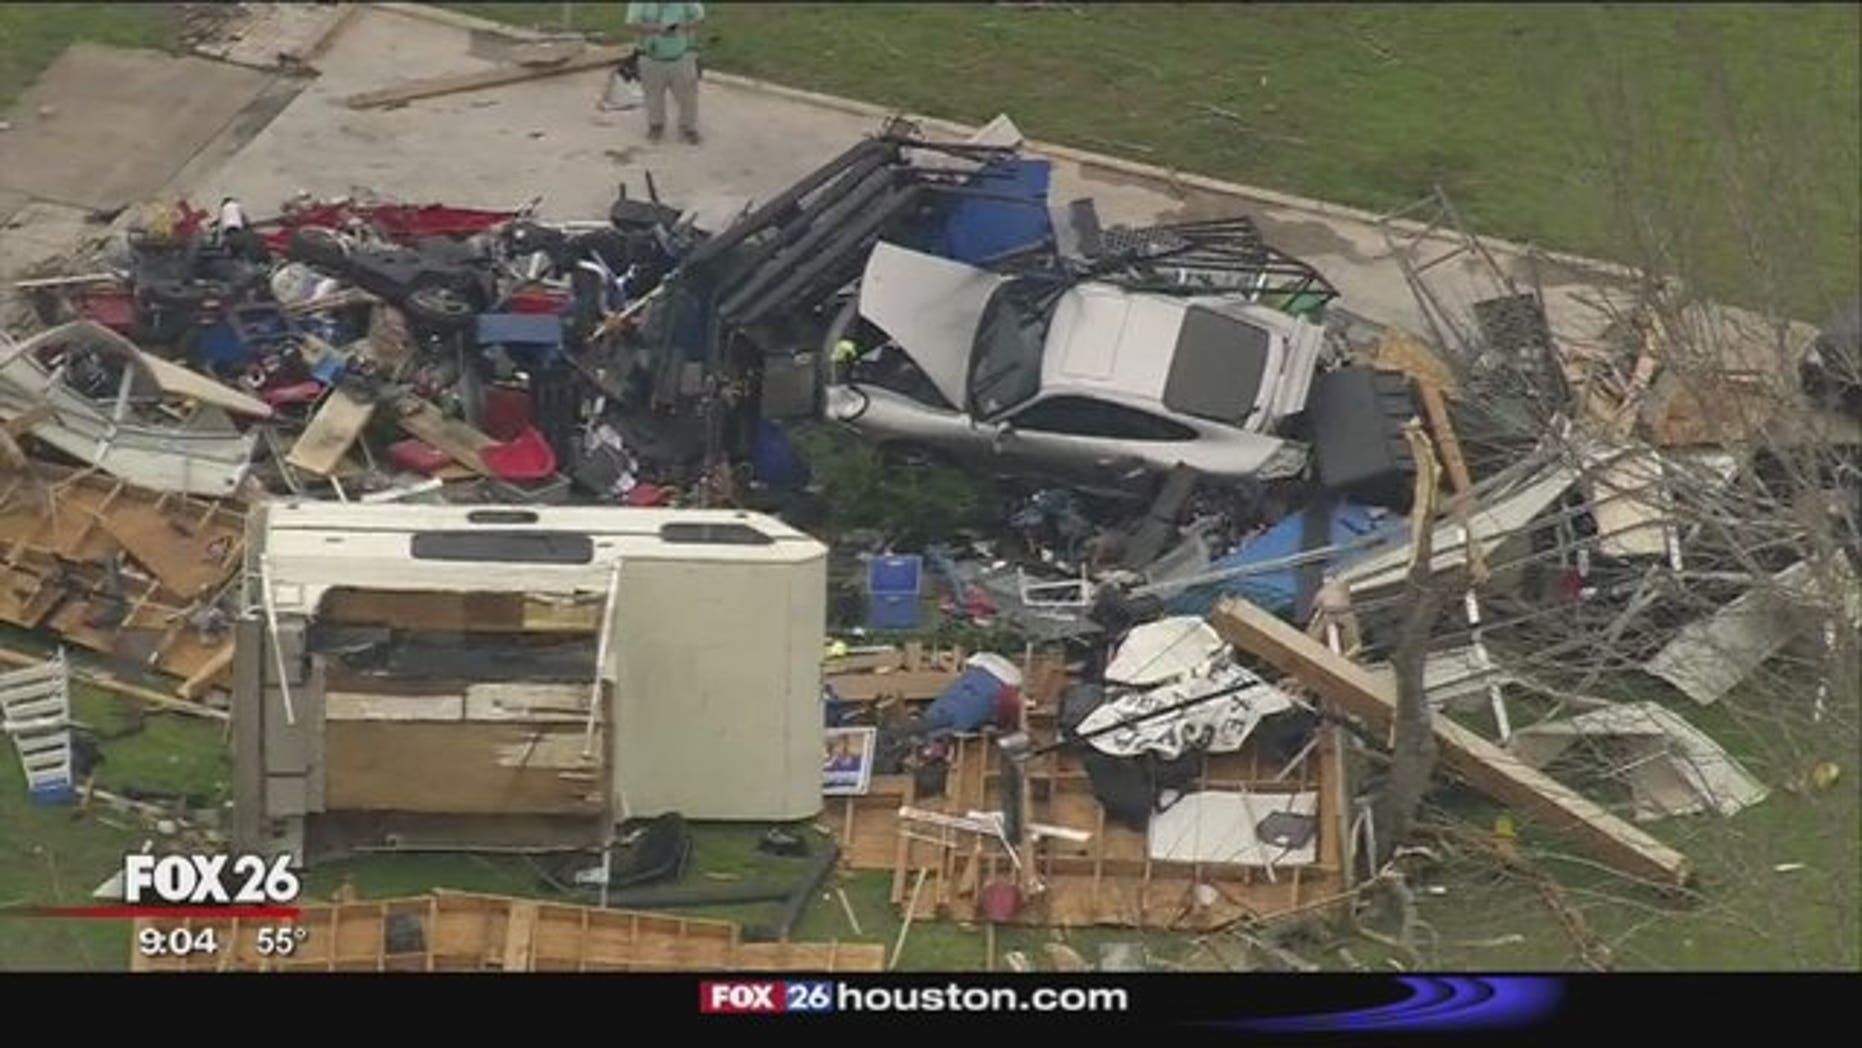 The powerful storm system tore through Richmond, damaging and destroying homes.